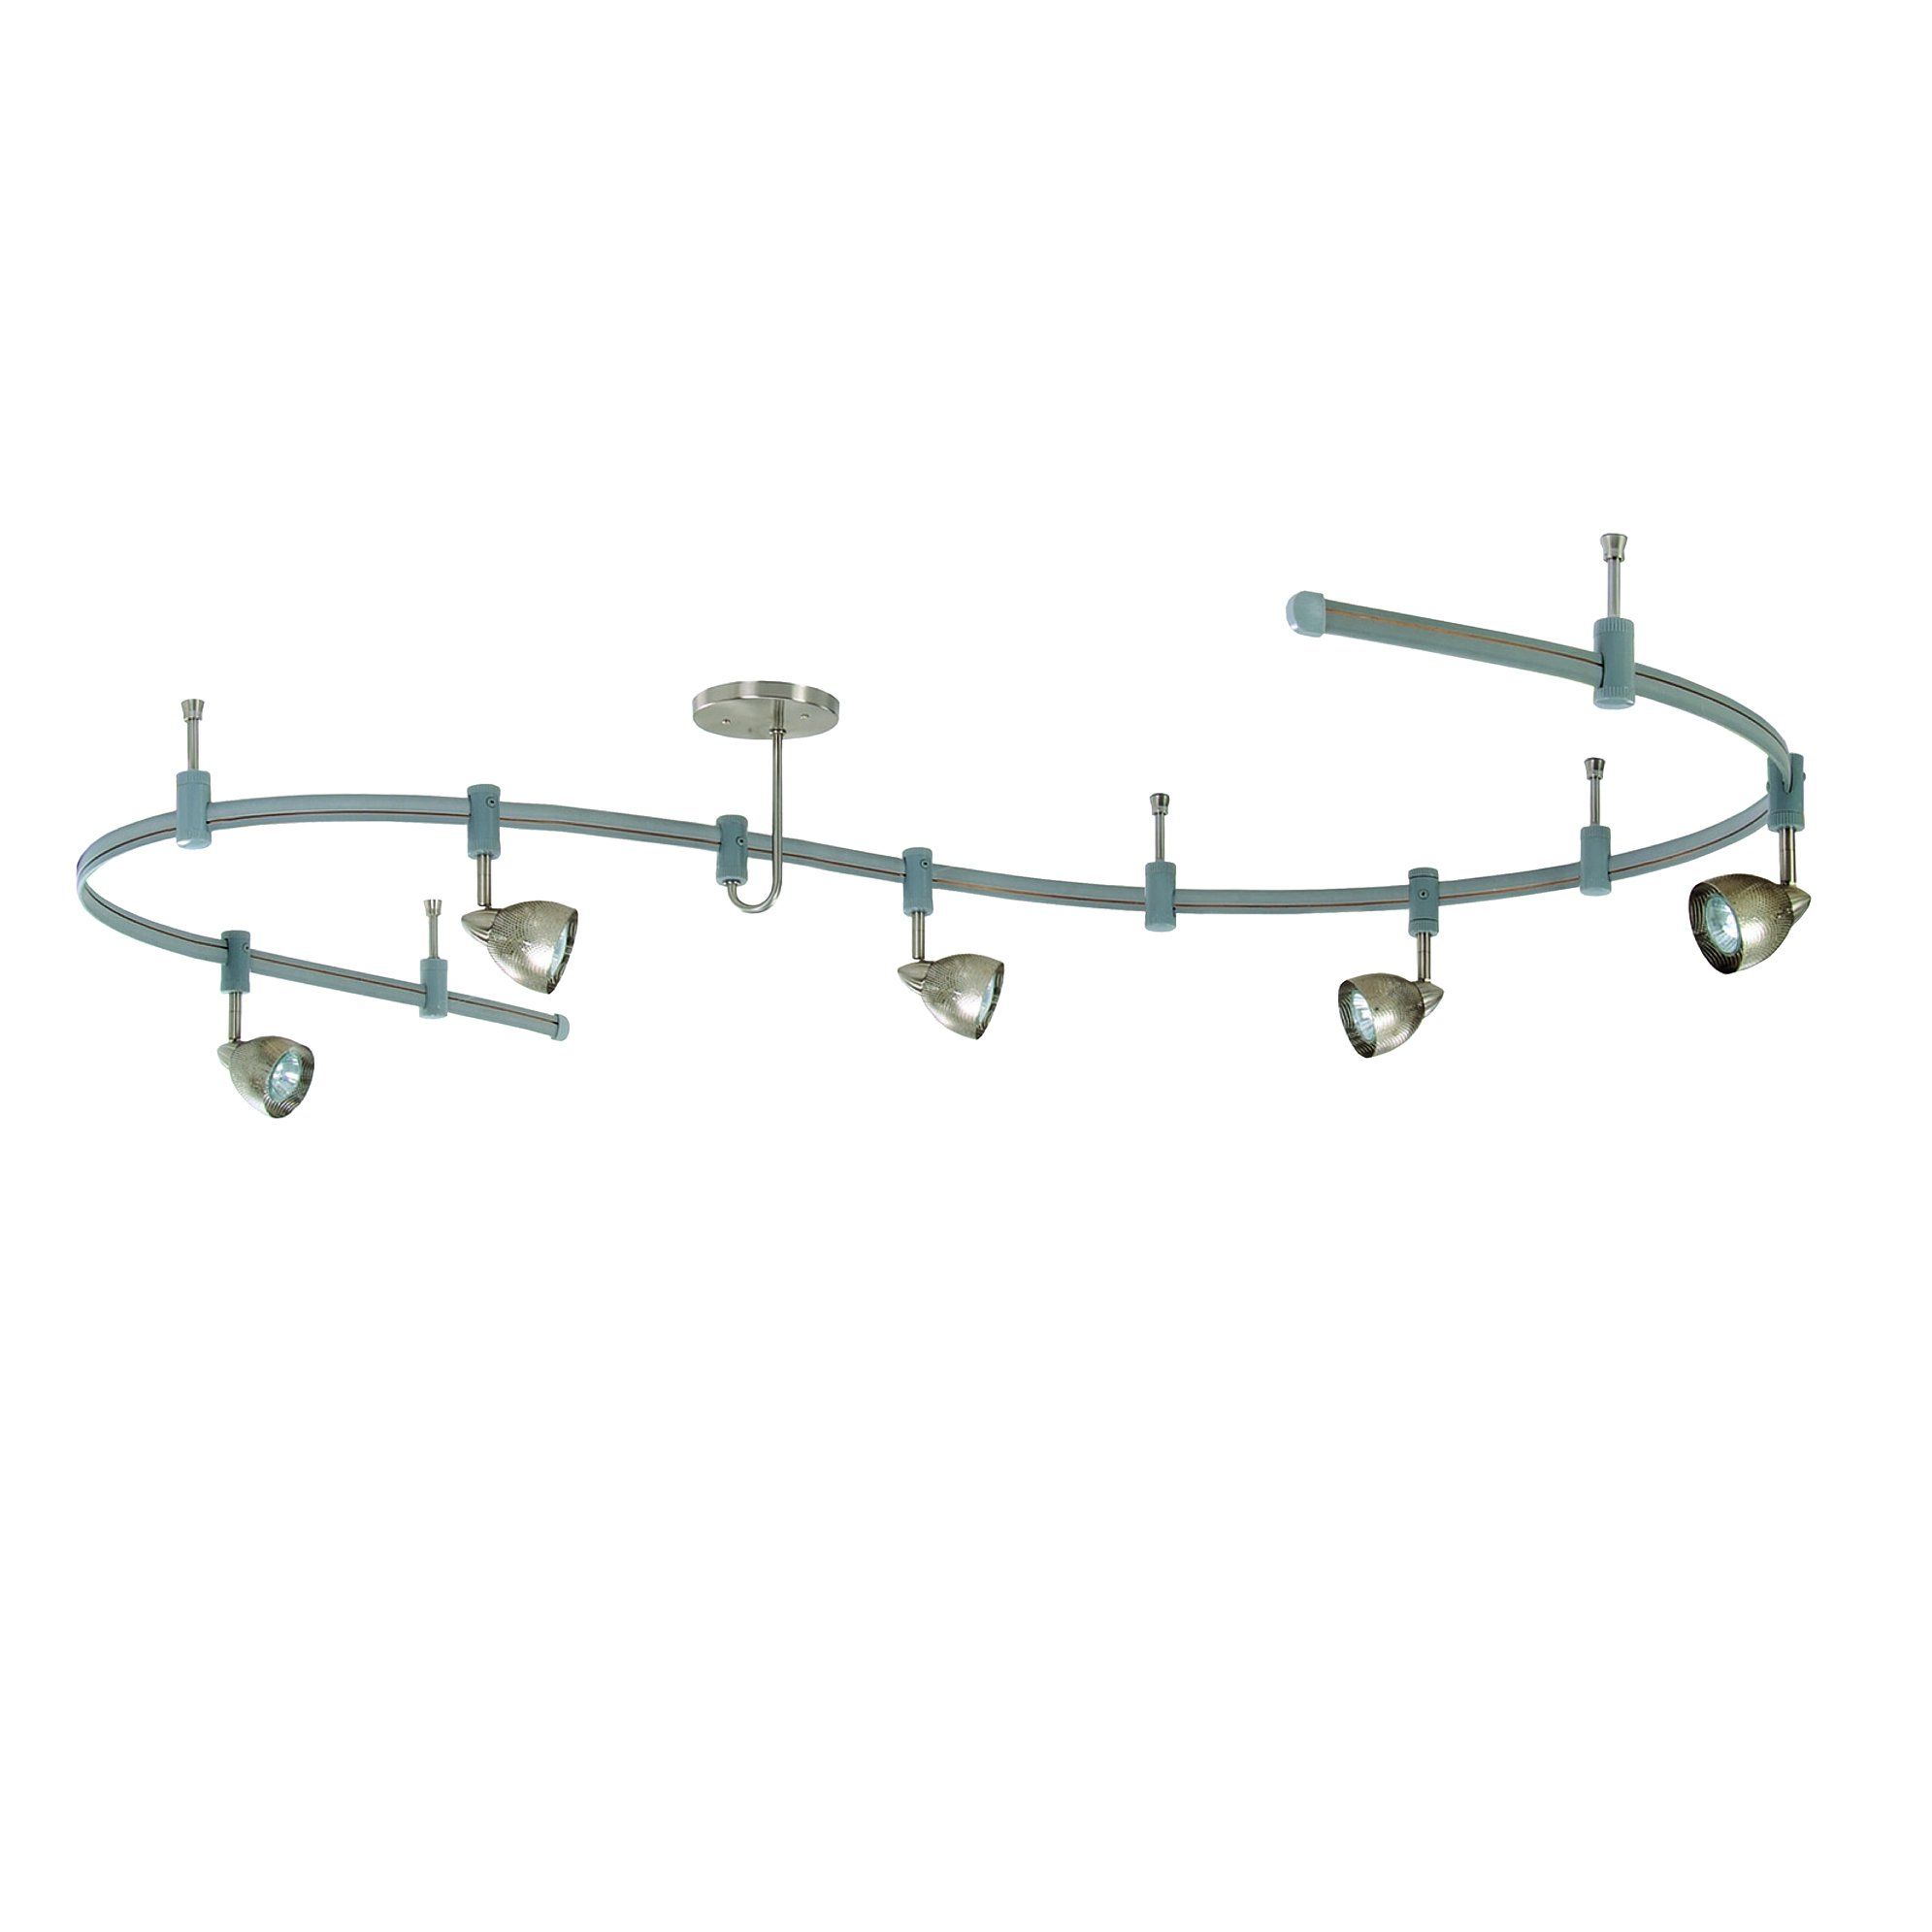 Home depot track lighting WinLights